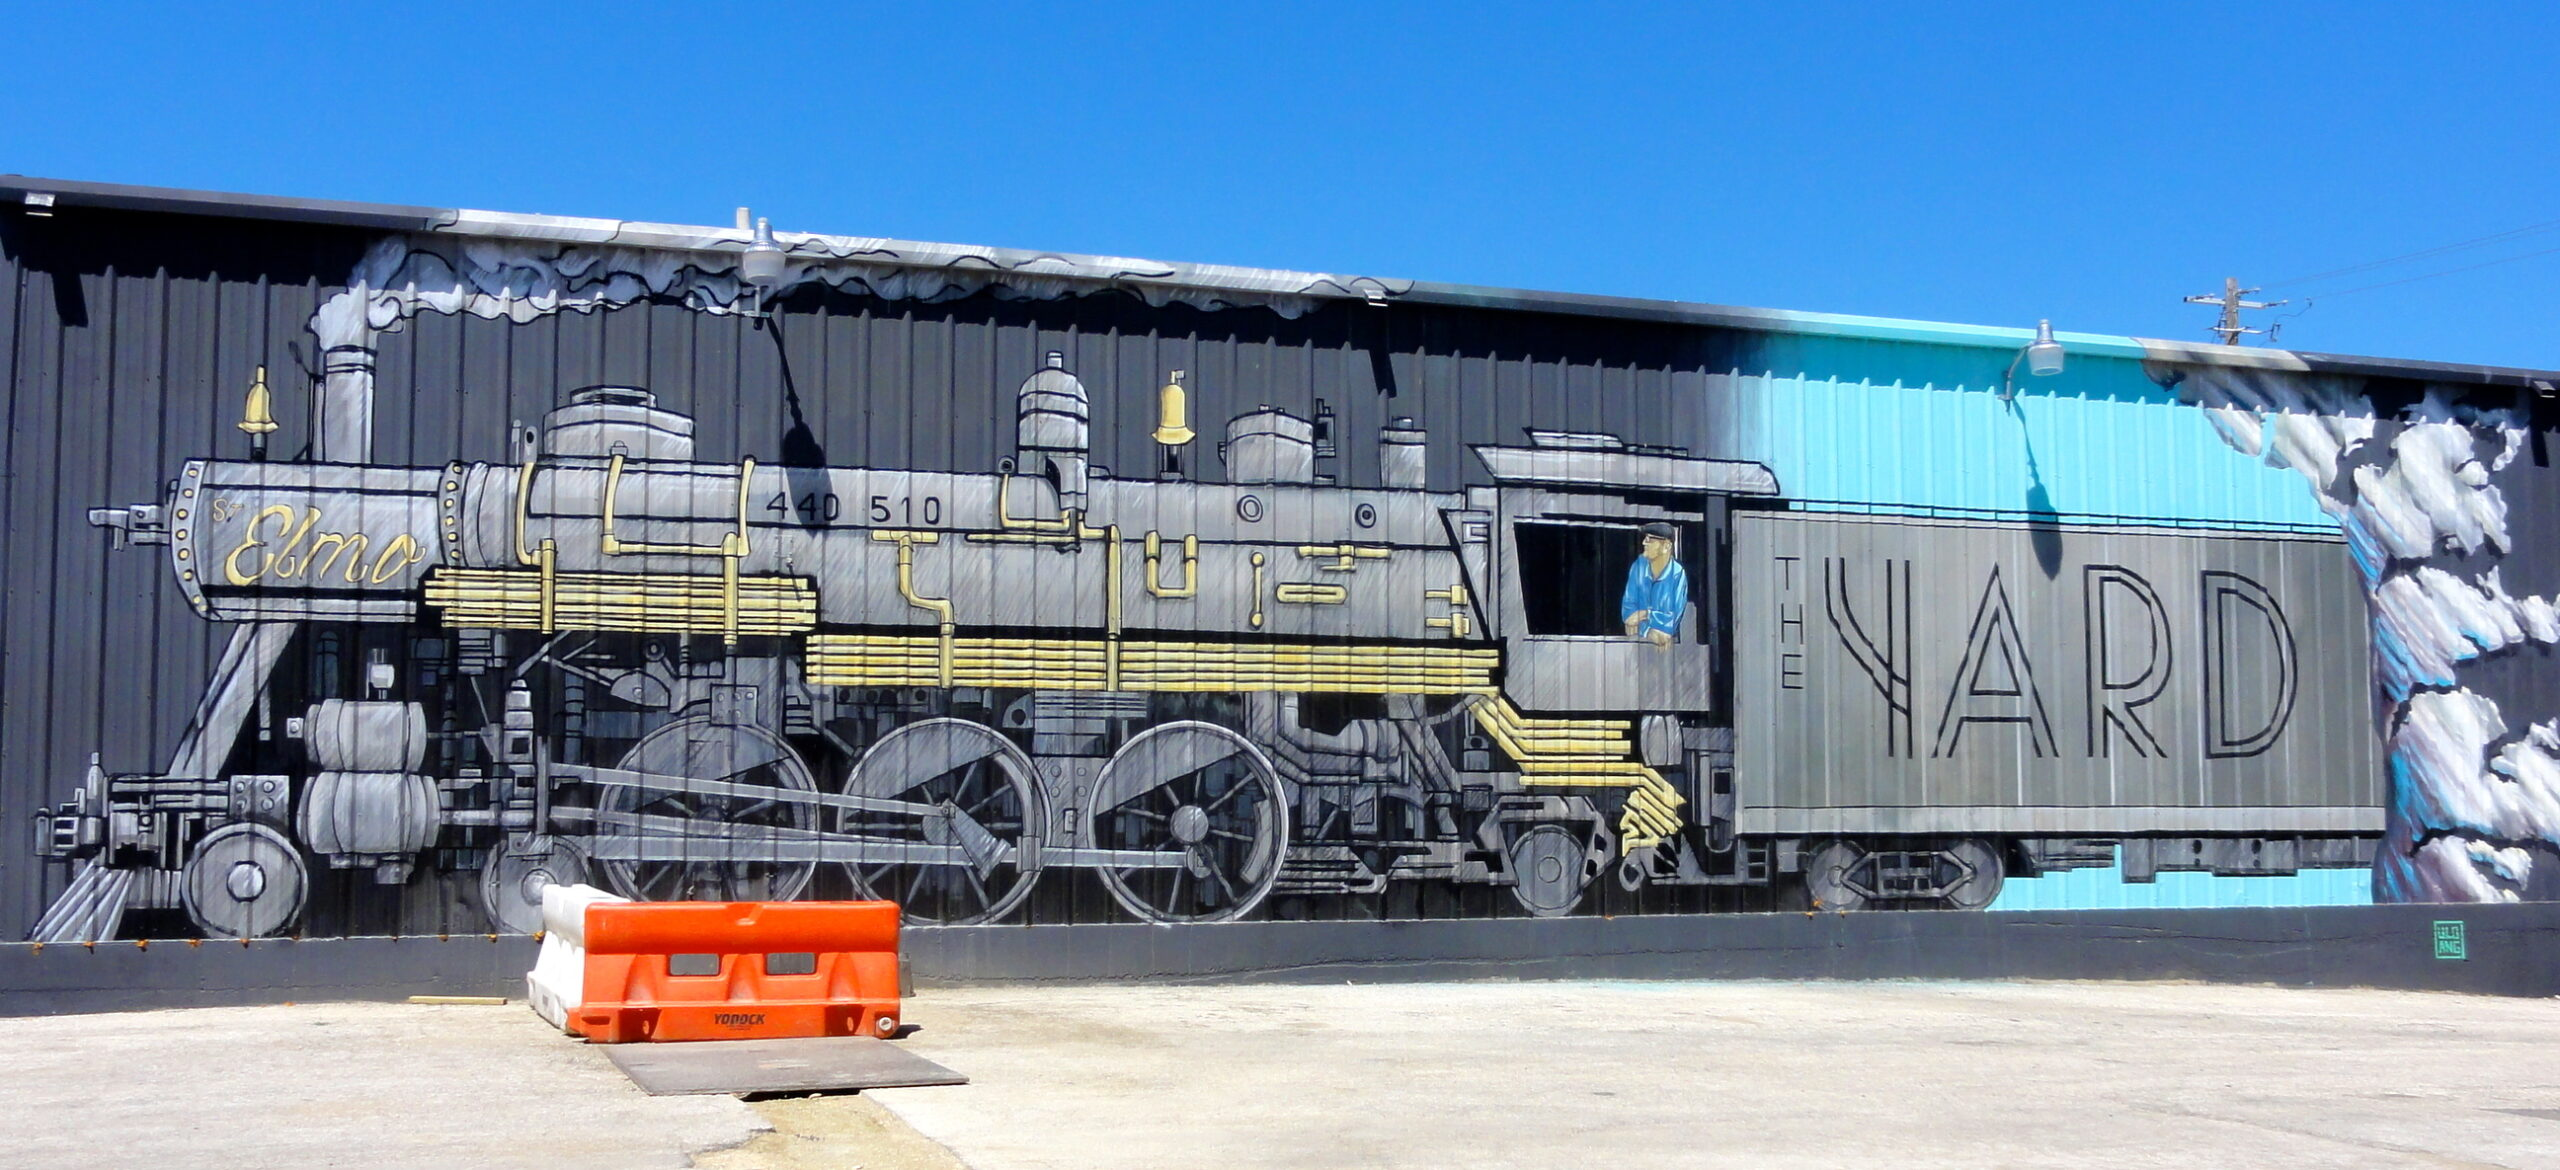 Locomotive Mural